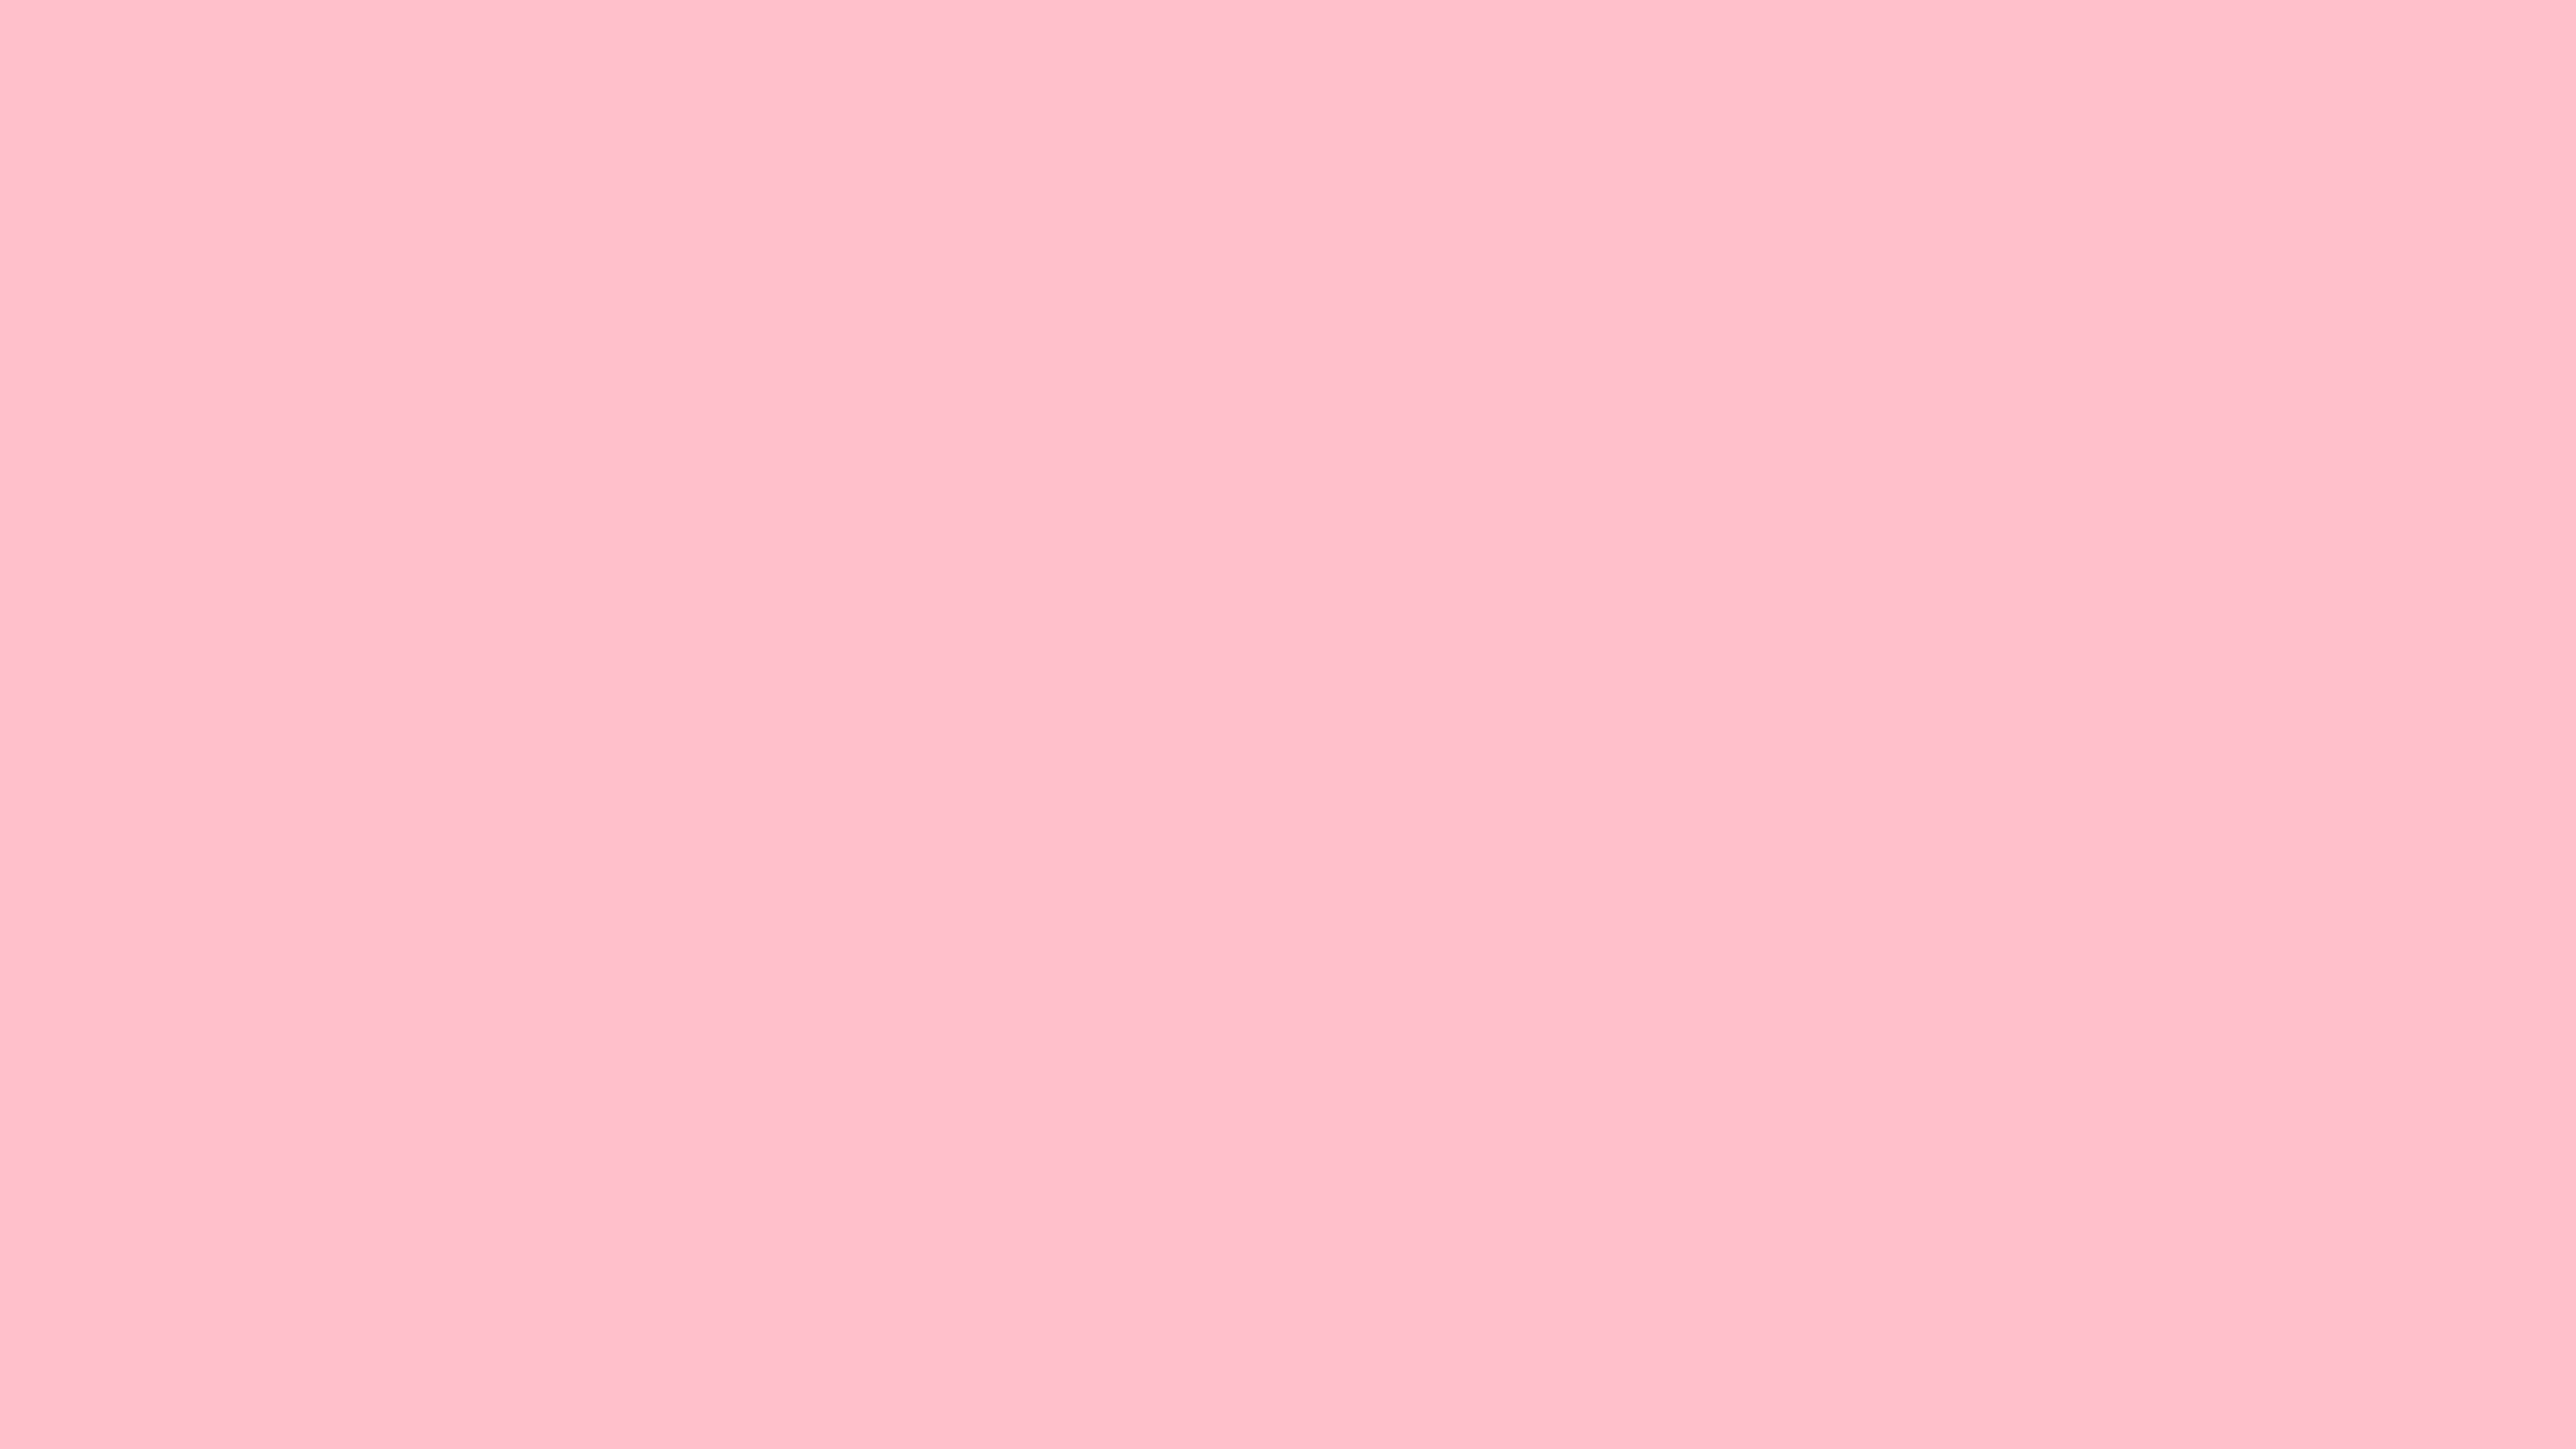 4096x2304 Pink Solid Color Background